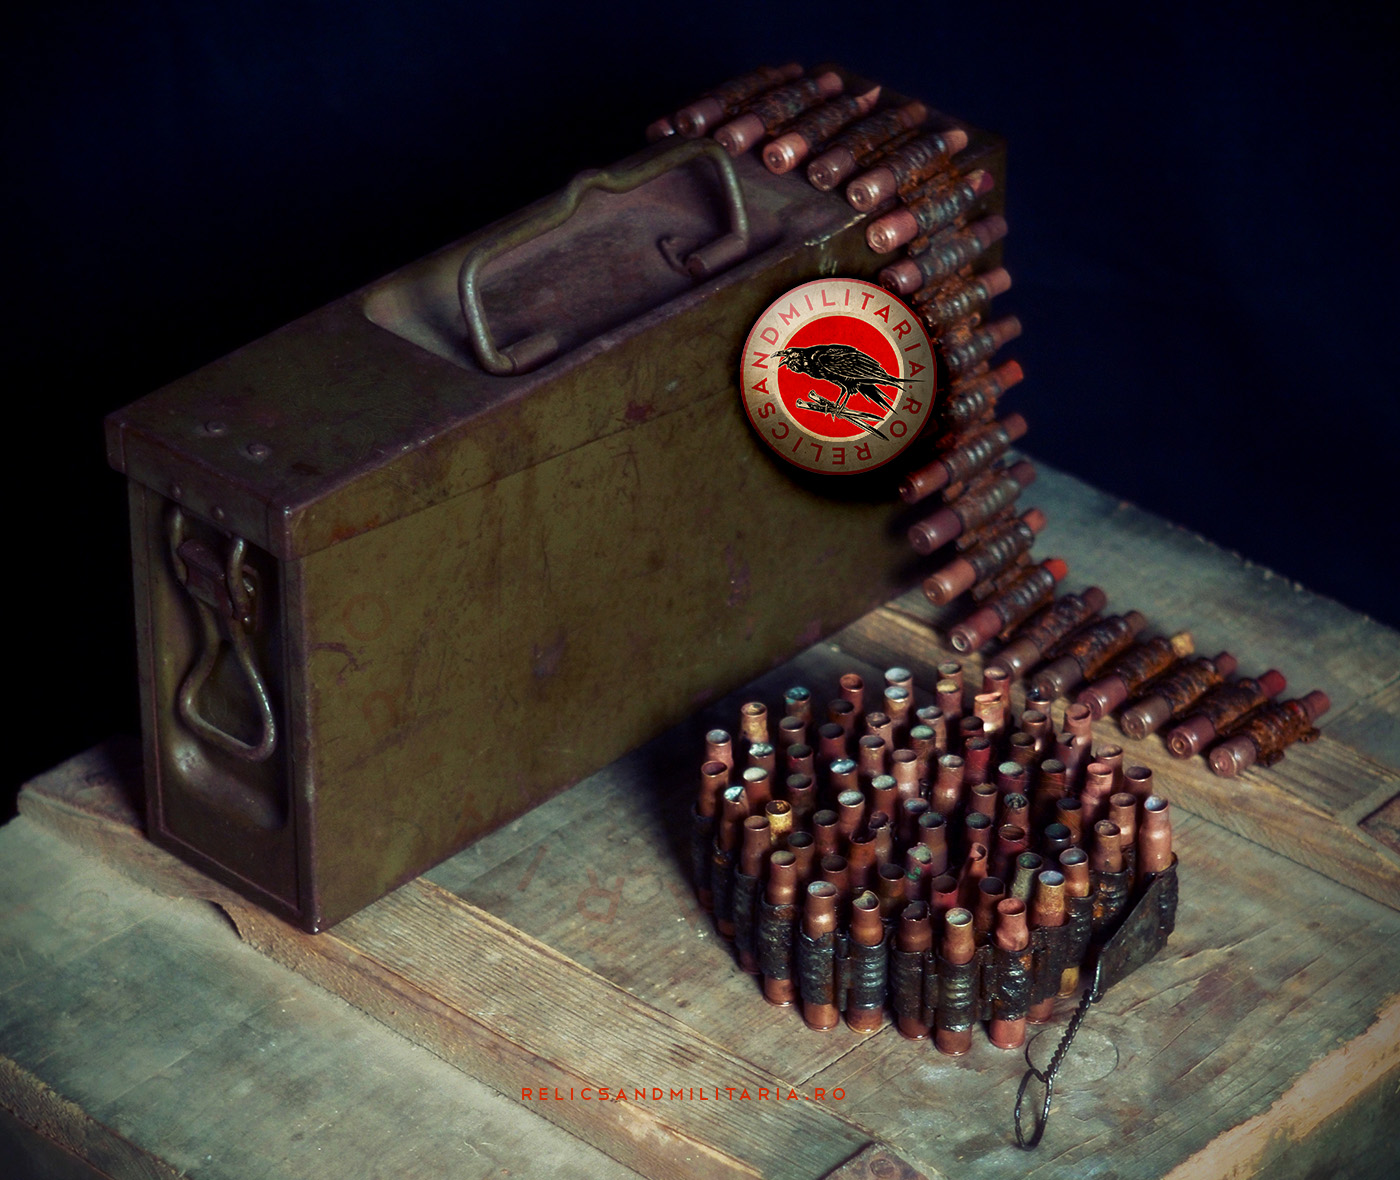 Zbrojovka ZB.37 ZB.53 Cal 7.92 Machine Gun ammunition box